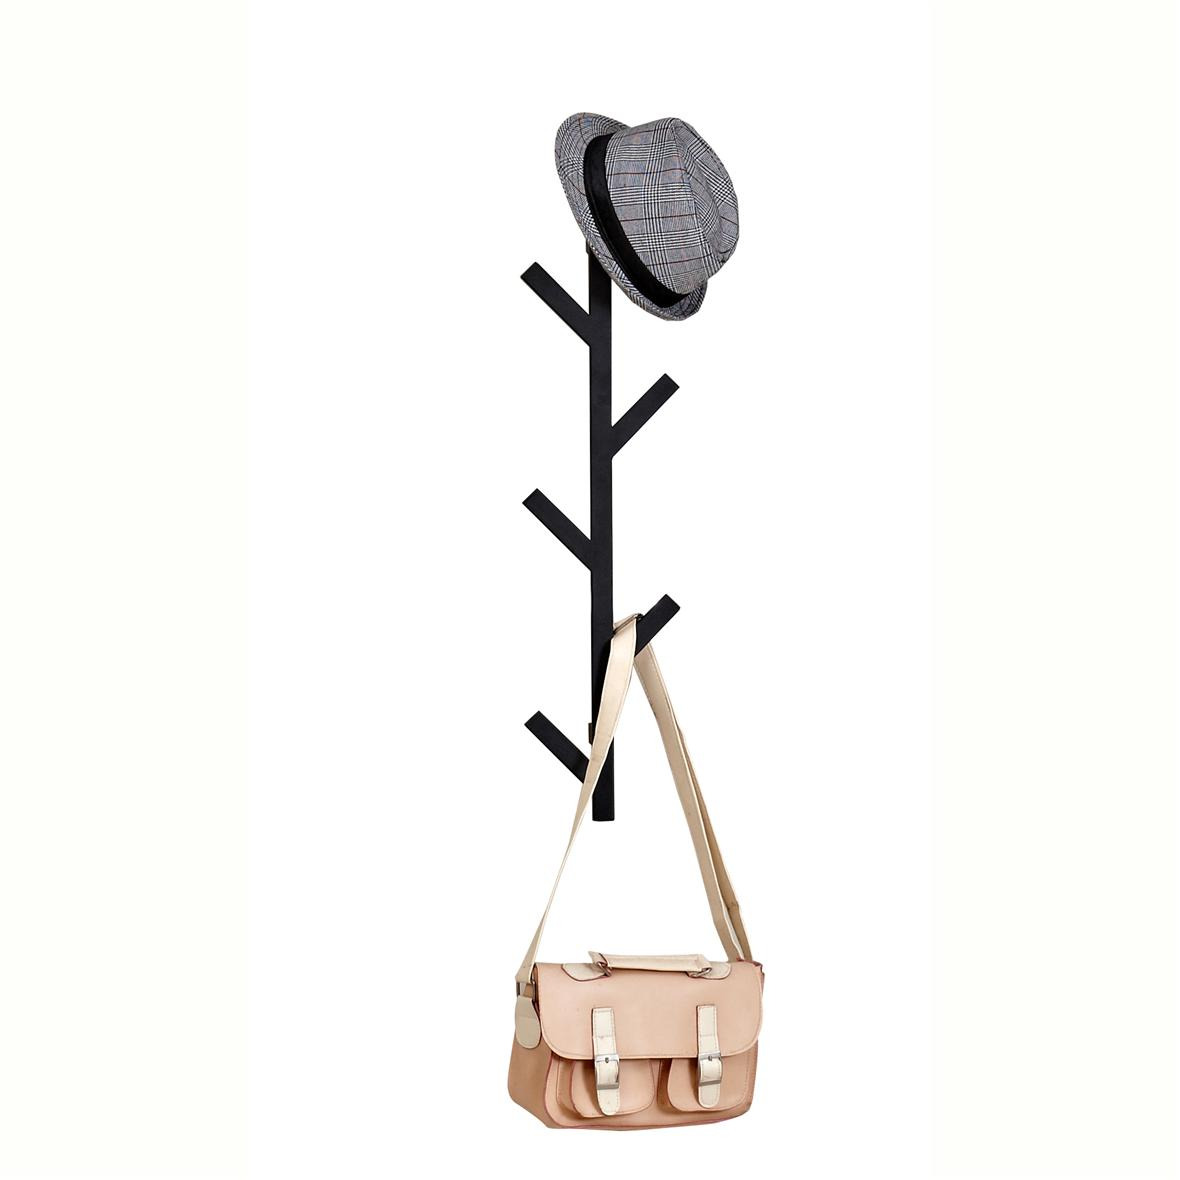 Modern Wall Mounted Coat Hanger Clo (end 3/28/2019 11:11 PM)